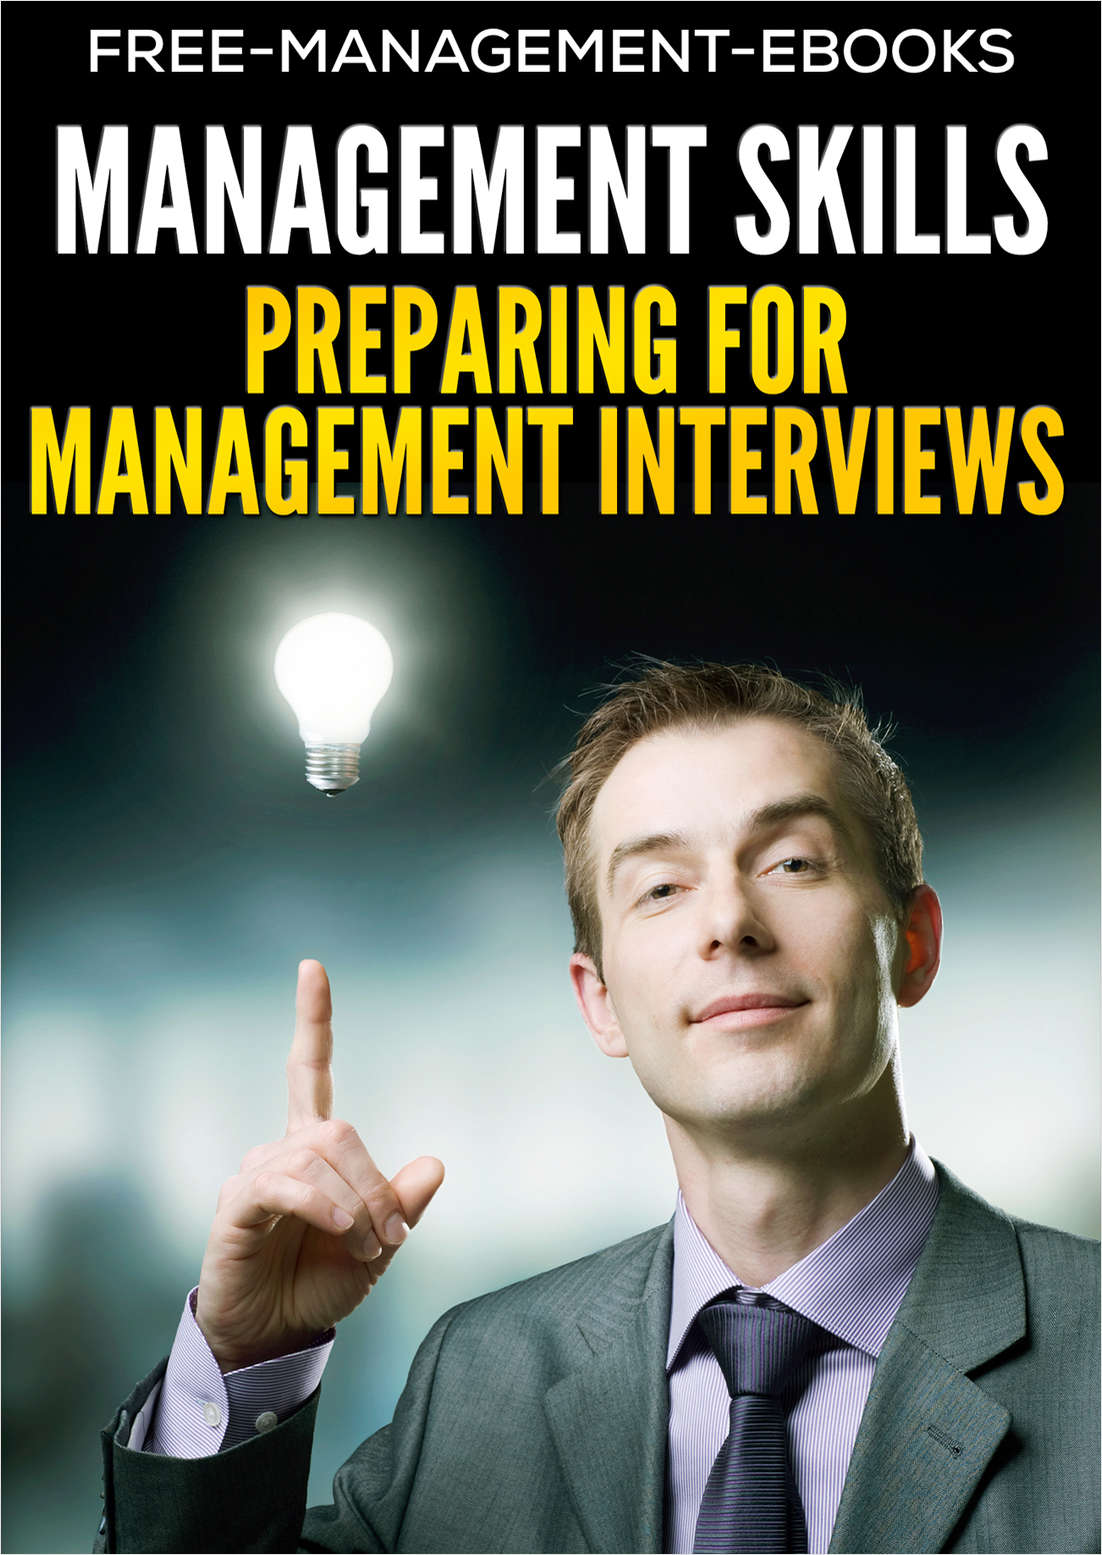 Preparing for Management Interviews - Developing Your Management Skills